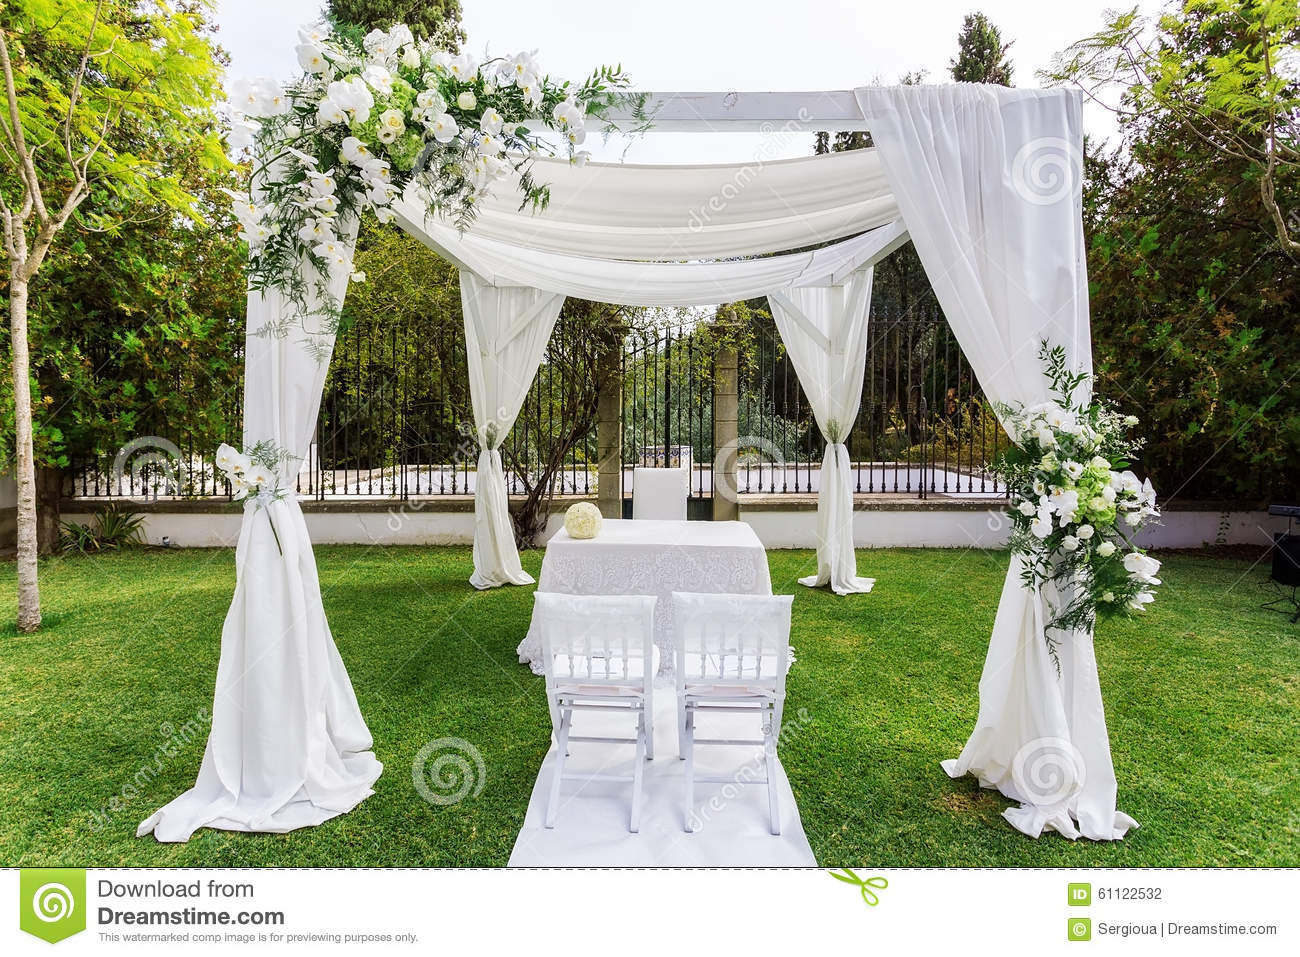 Silk tent for the wedding ceremony for the newlyweds the for Boda en un jardin